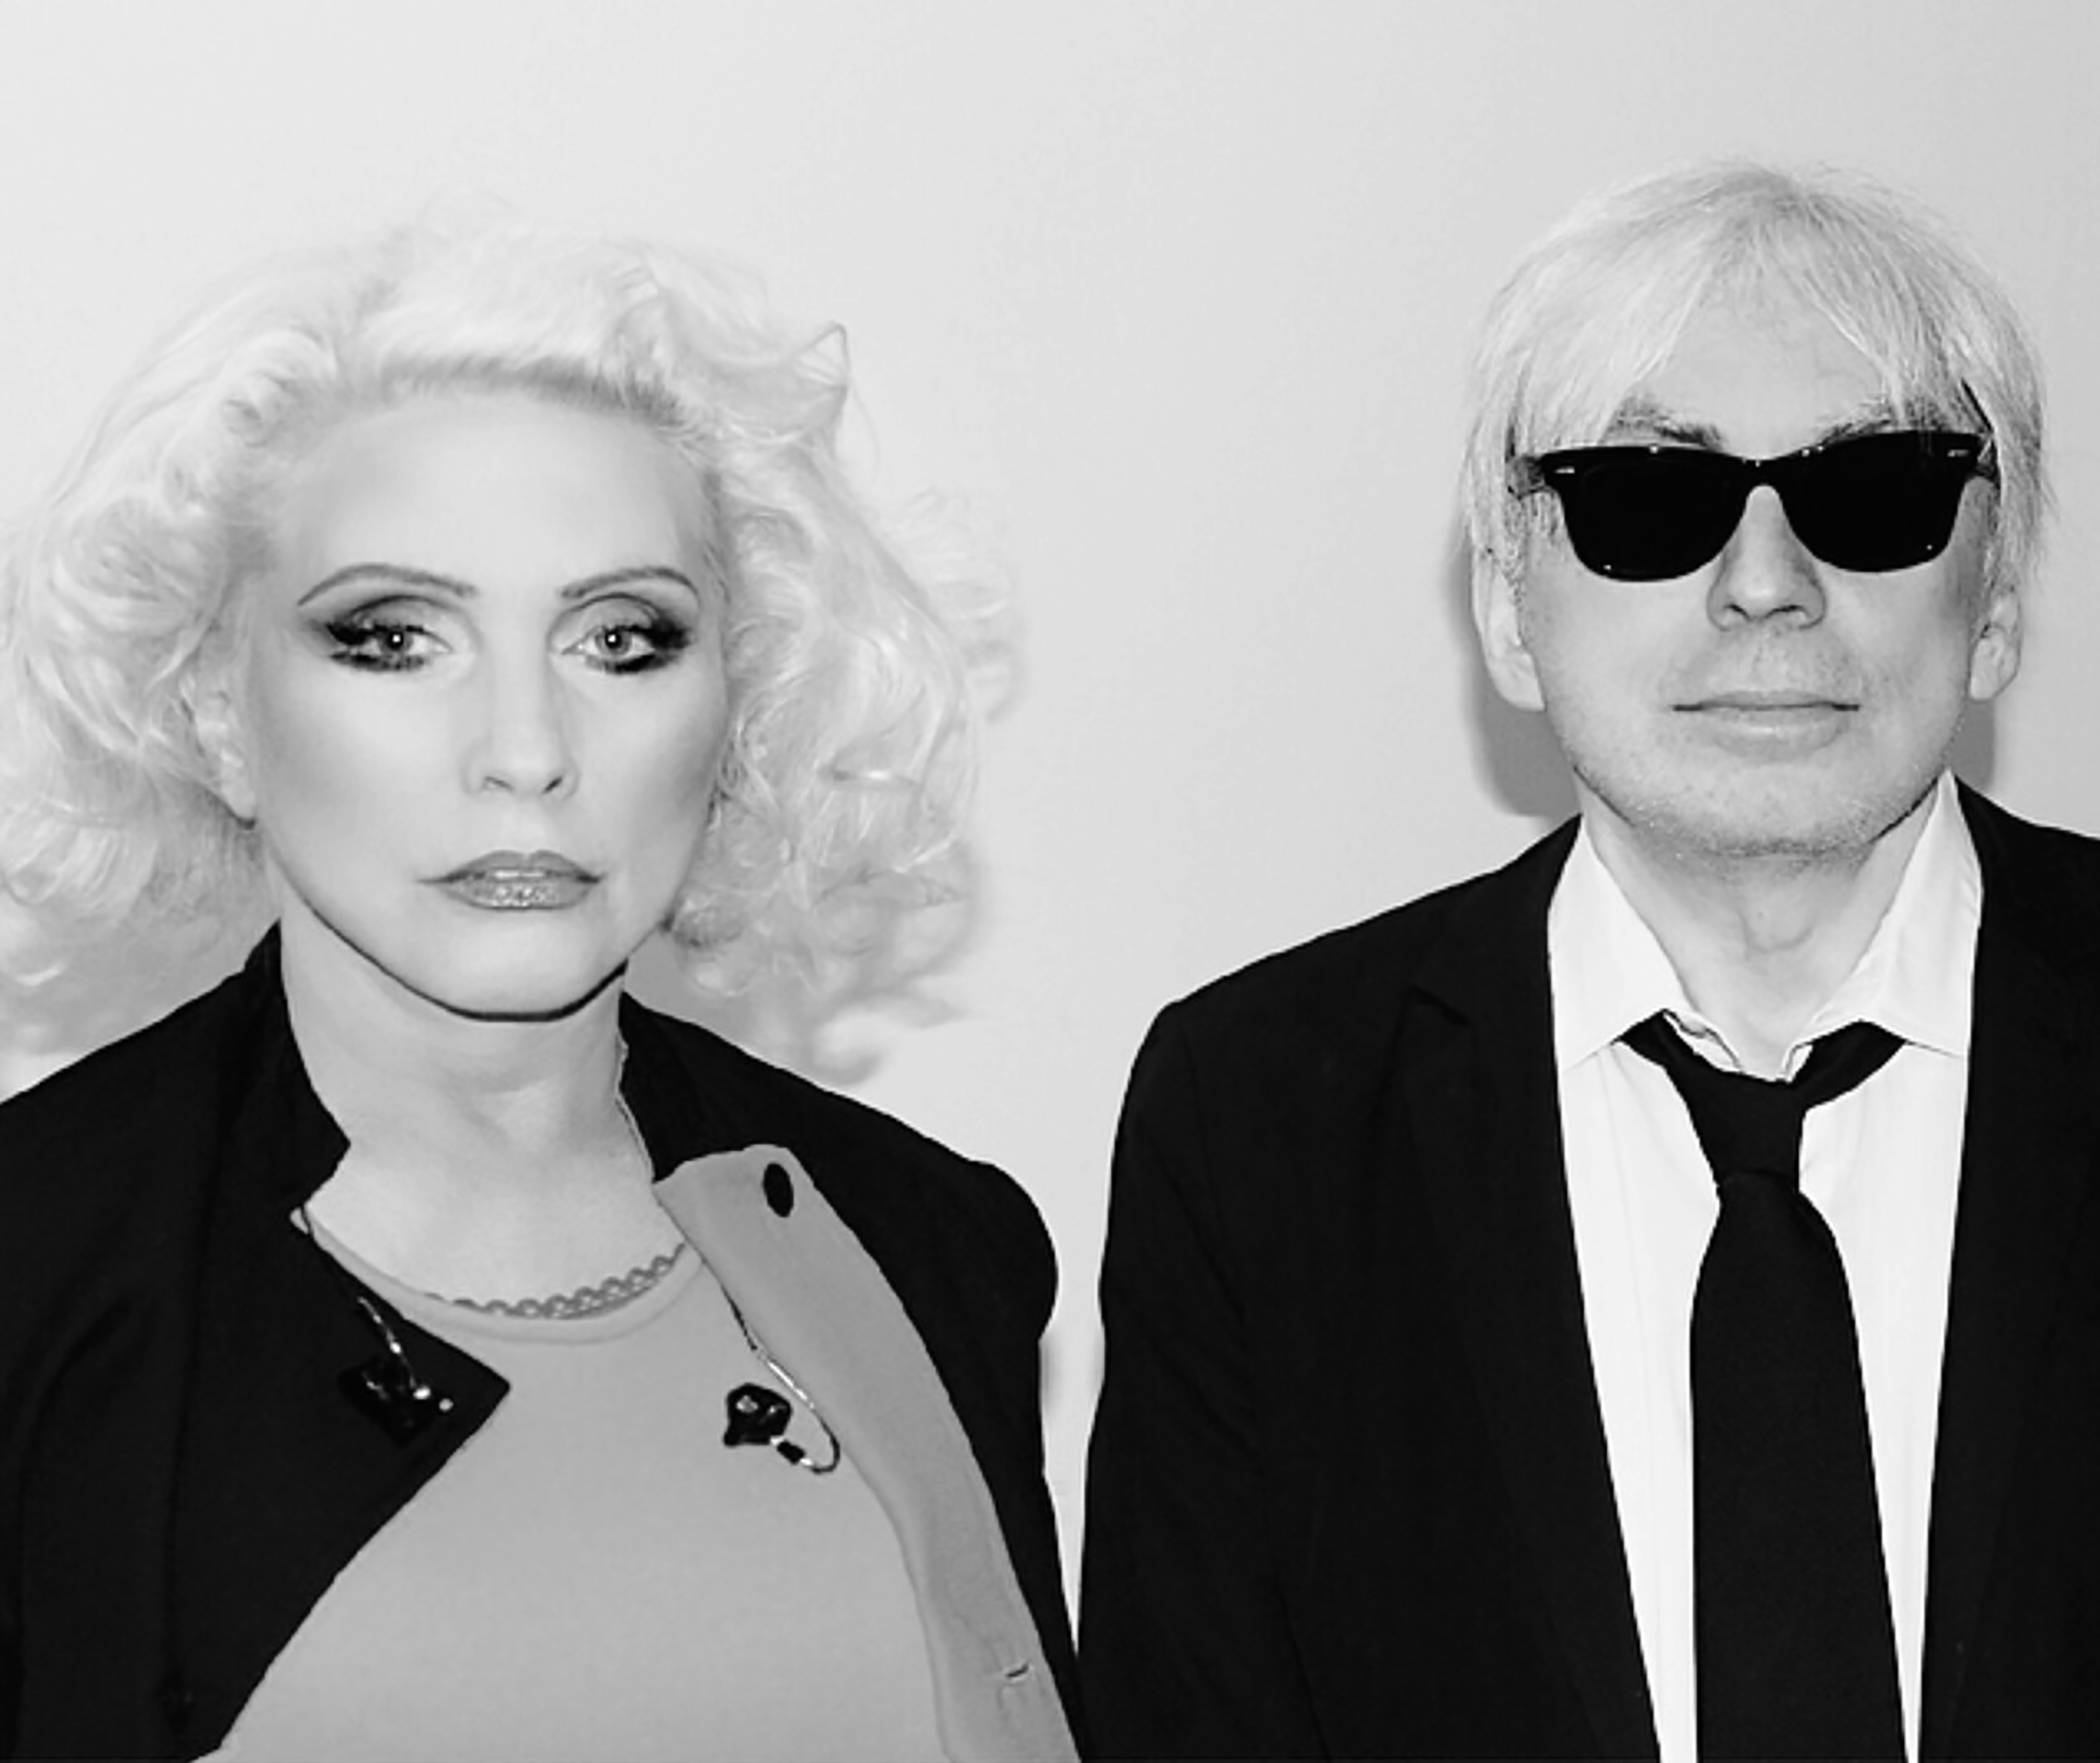 debbie harry and chris stein photo credit guy furrow Disrupting the Darkness: St. Vincent, Blondie, and Rhye on David Lynch